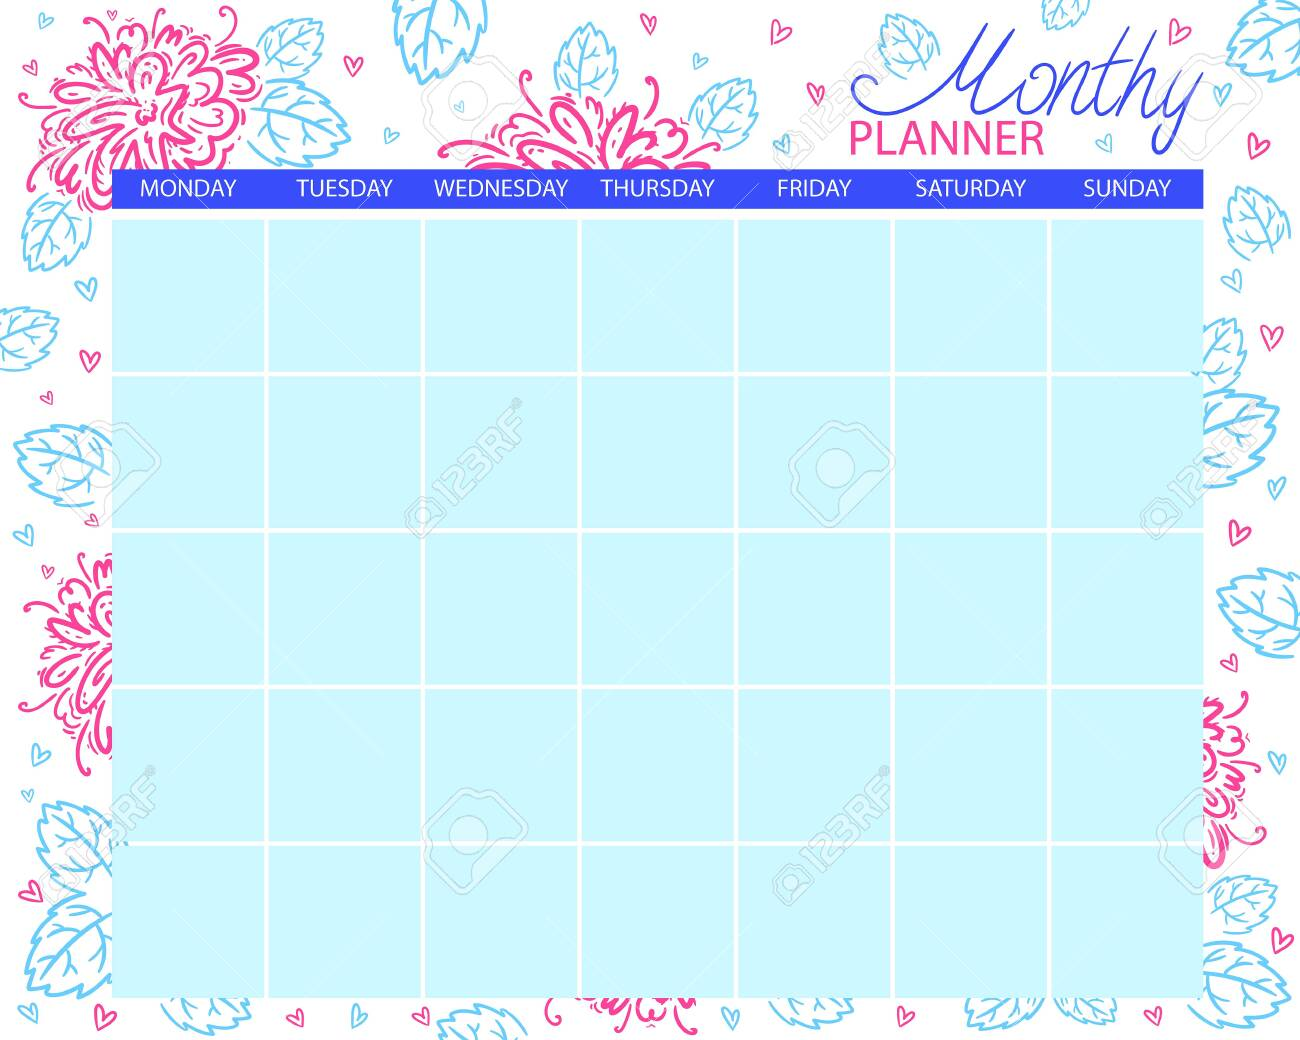 photo regarding Monthly Planning Calendar named Month-to-month planner. Calendar for the thirty day period, developing jobs. For..